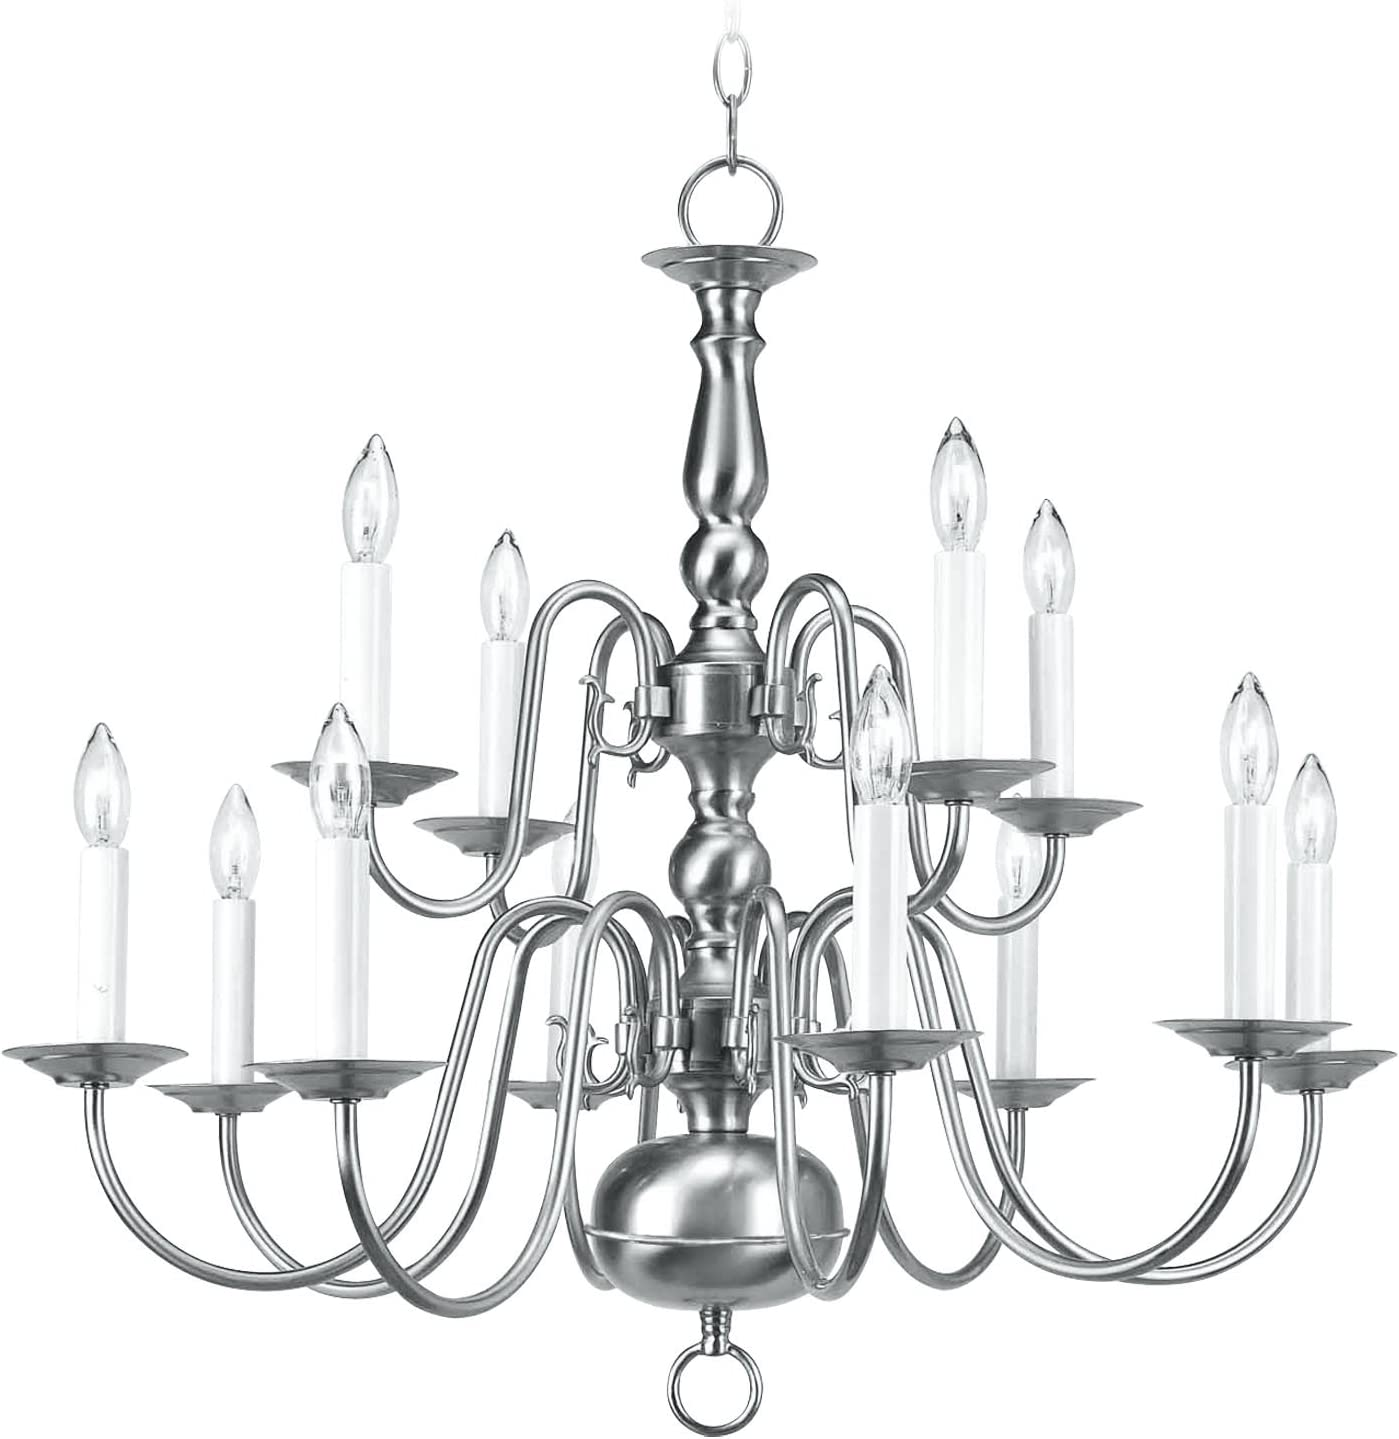 Livex Lighting 5012-91 Chandelier